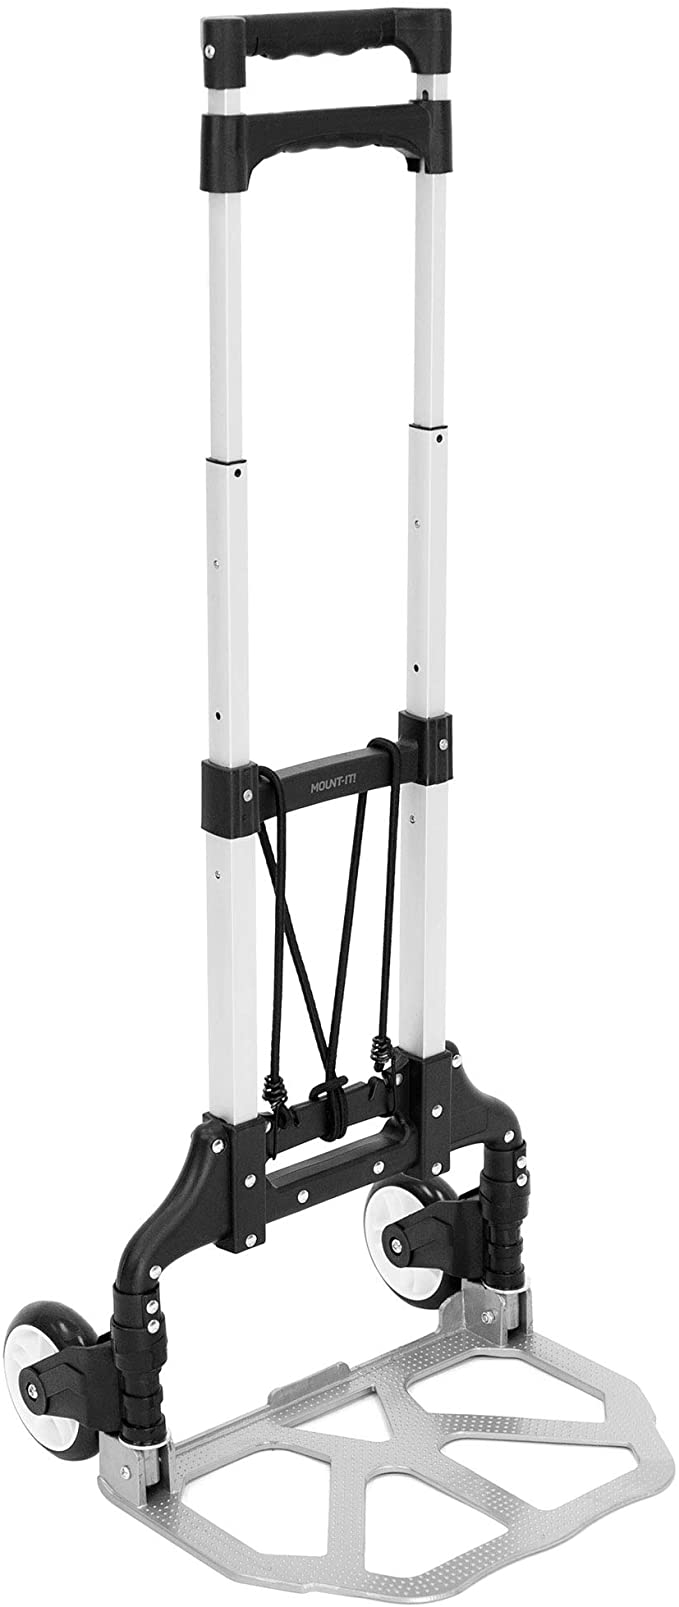 Amazon Com Mount It Folding Hand Truck And Personal Dolly Aluminum Luggage Cart 165 Lb Capacity With Rubber Wheels And Telescoping Handle For Indoor Outdoor Moving Travel Office Products